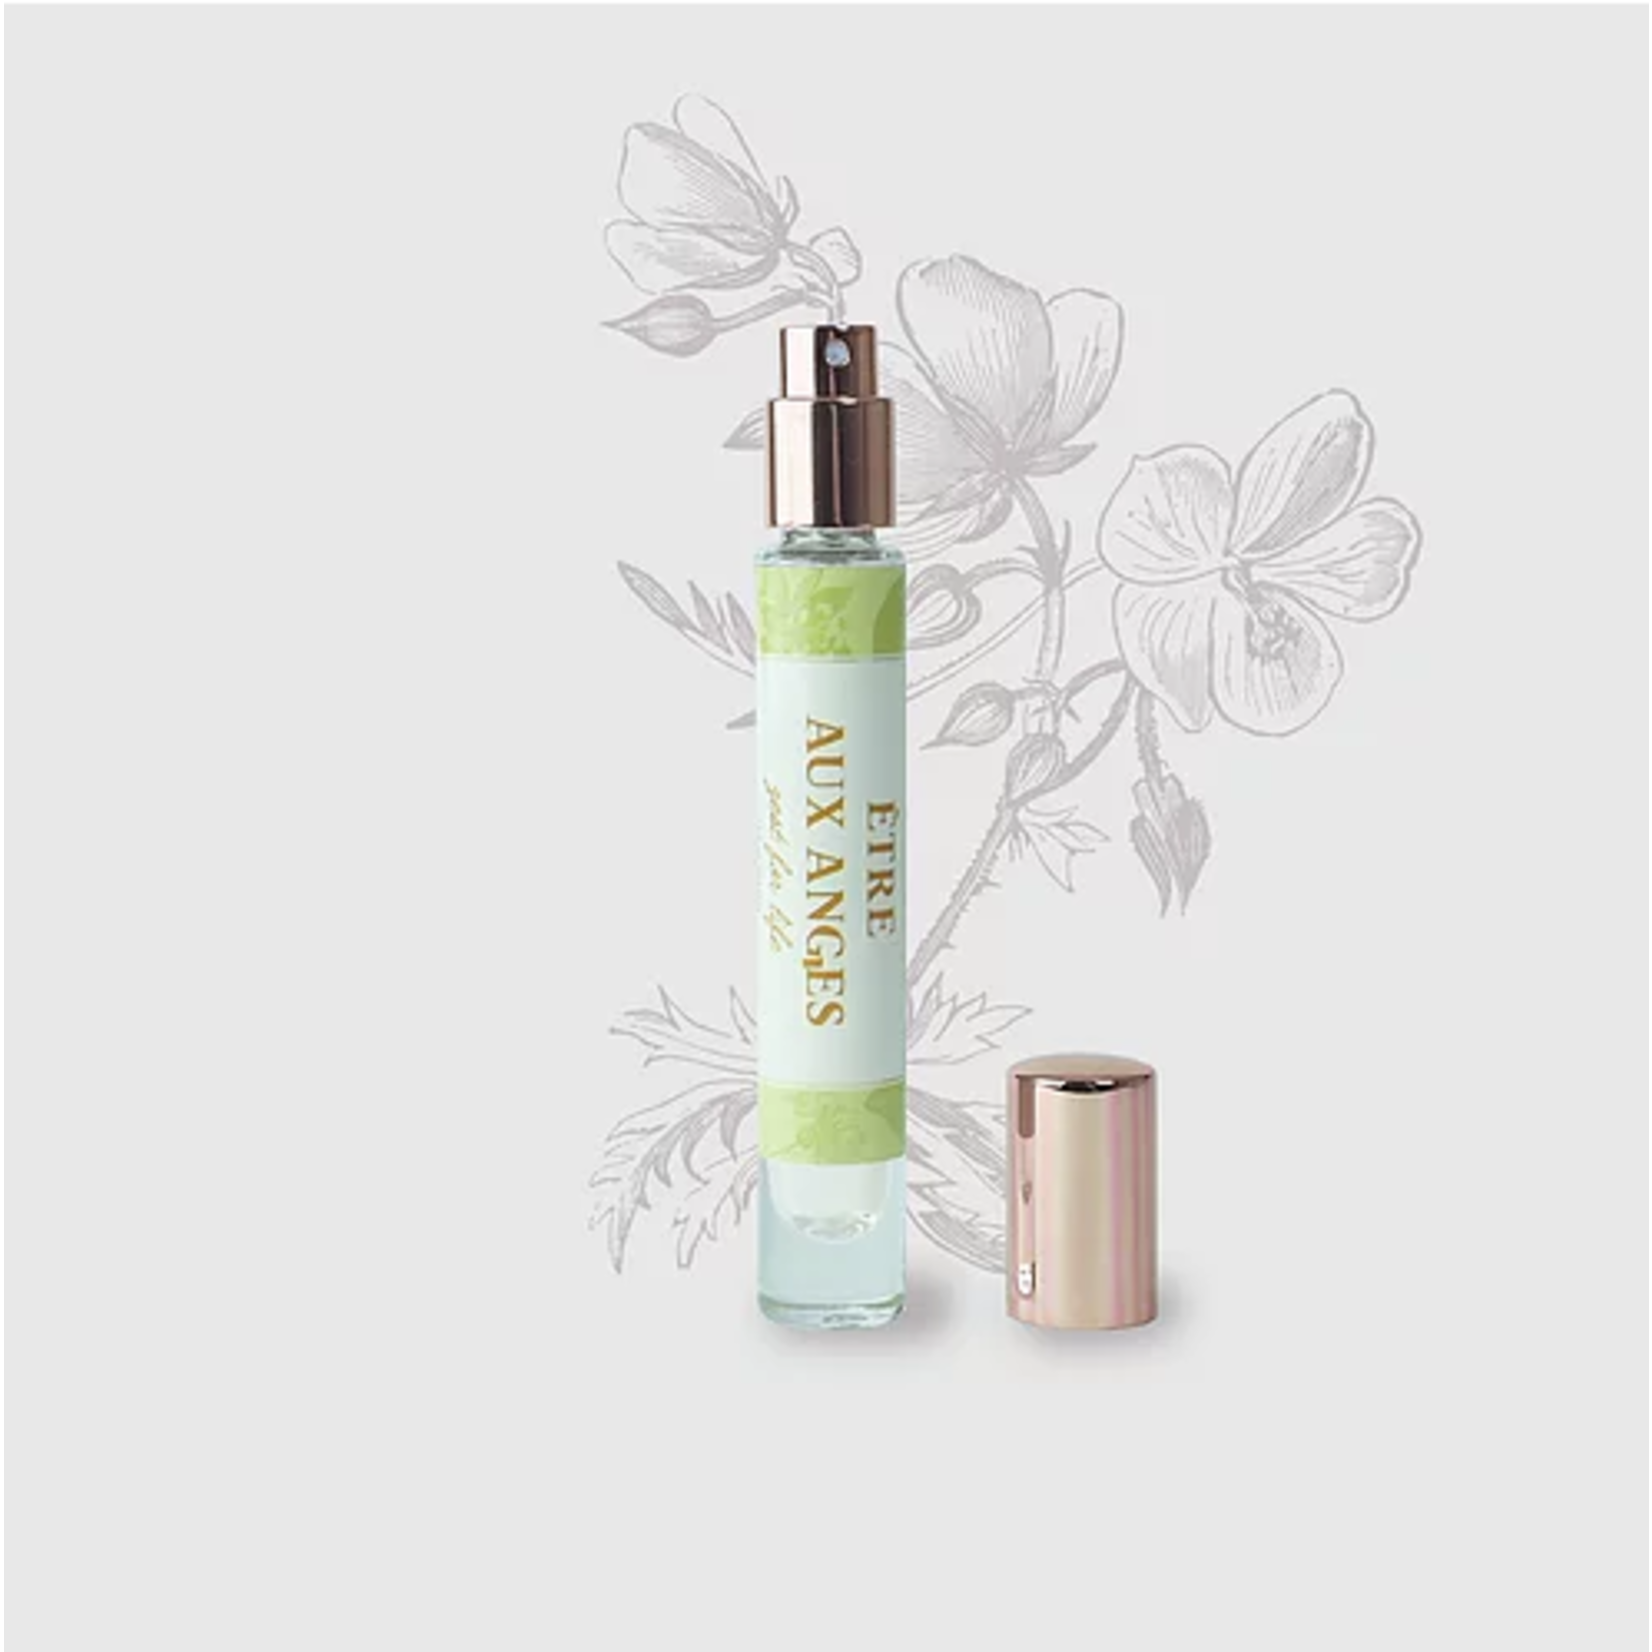 Collection de Massy FRESH - BRIGHT - AUTHENTIC     Summer comes in many delicious scents, one of them being orange blossom. It's like a little vacation in a bottle. Just so lovely.  Imagine yourself driving down the Italian coast and being able to smell the orange blossoms b